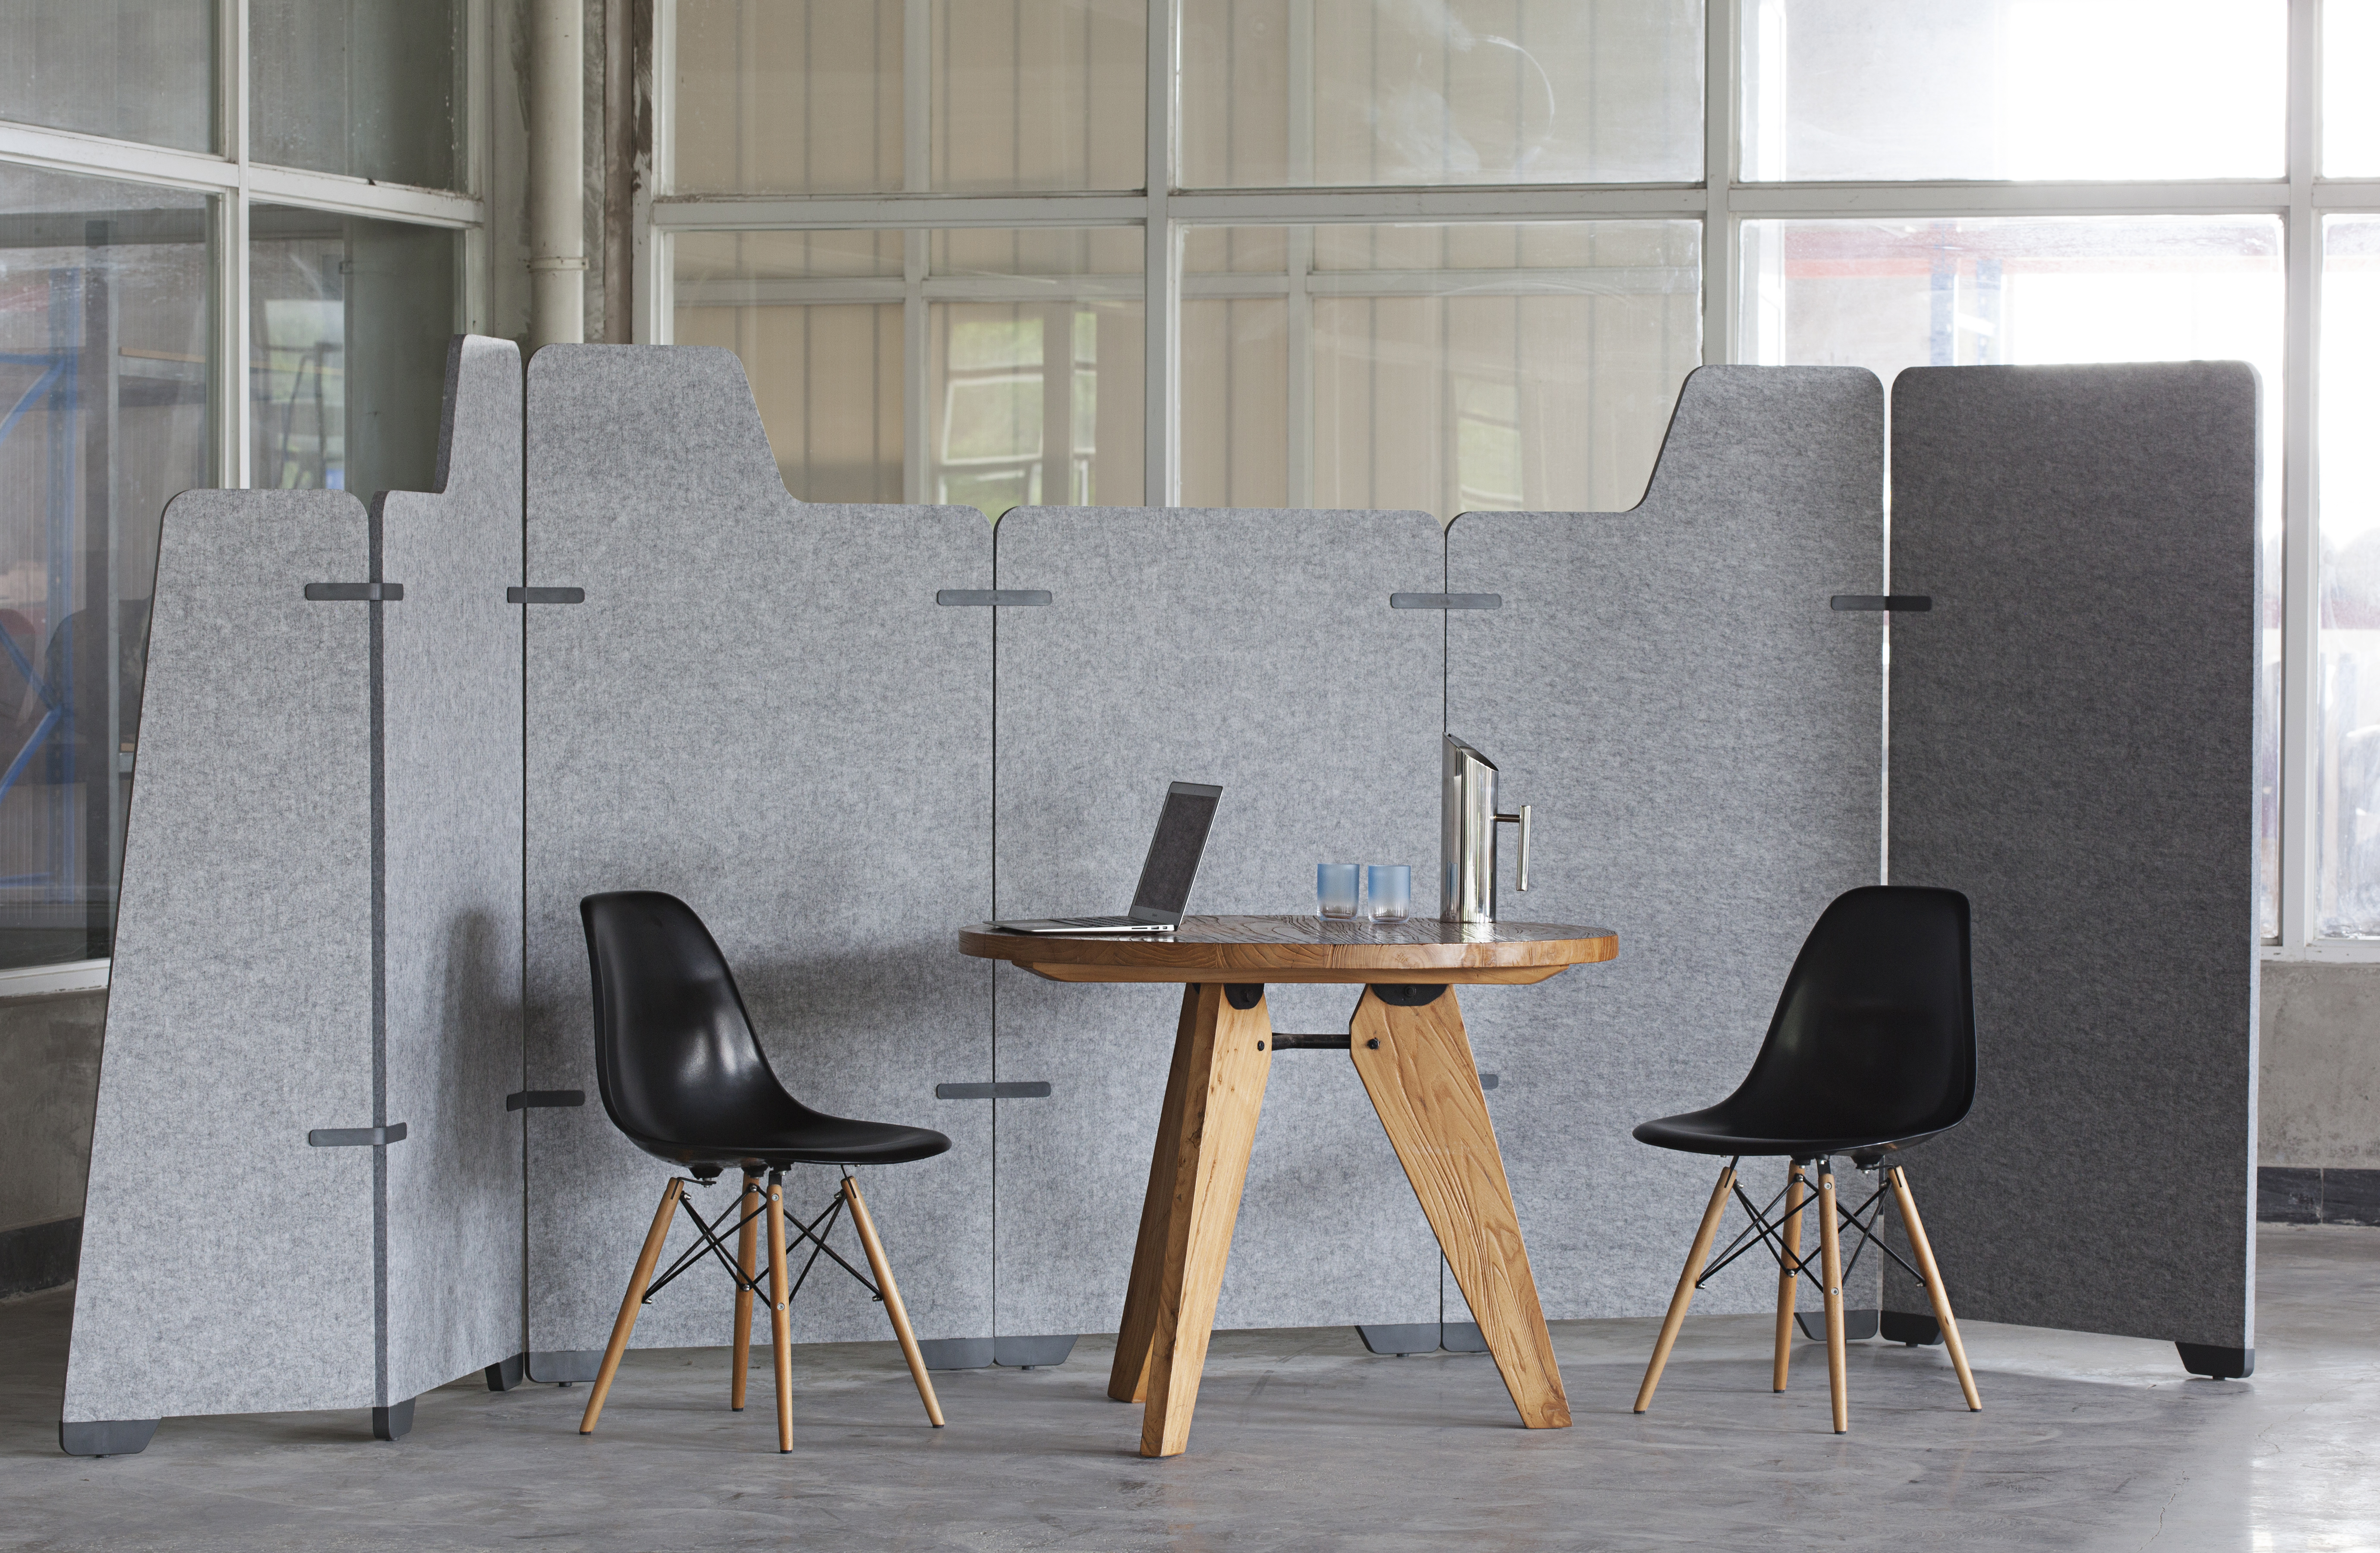 Ep-Partition-Wrap-402-Office-Dividers-Woven-Image-2